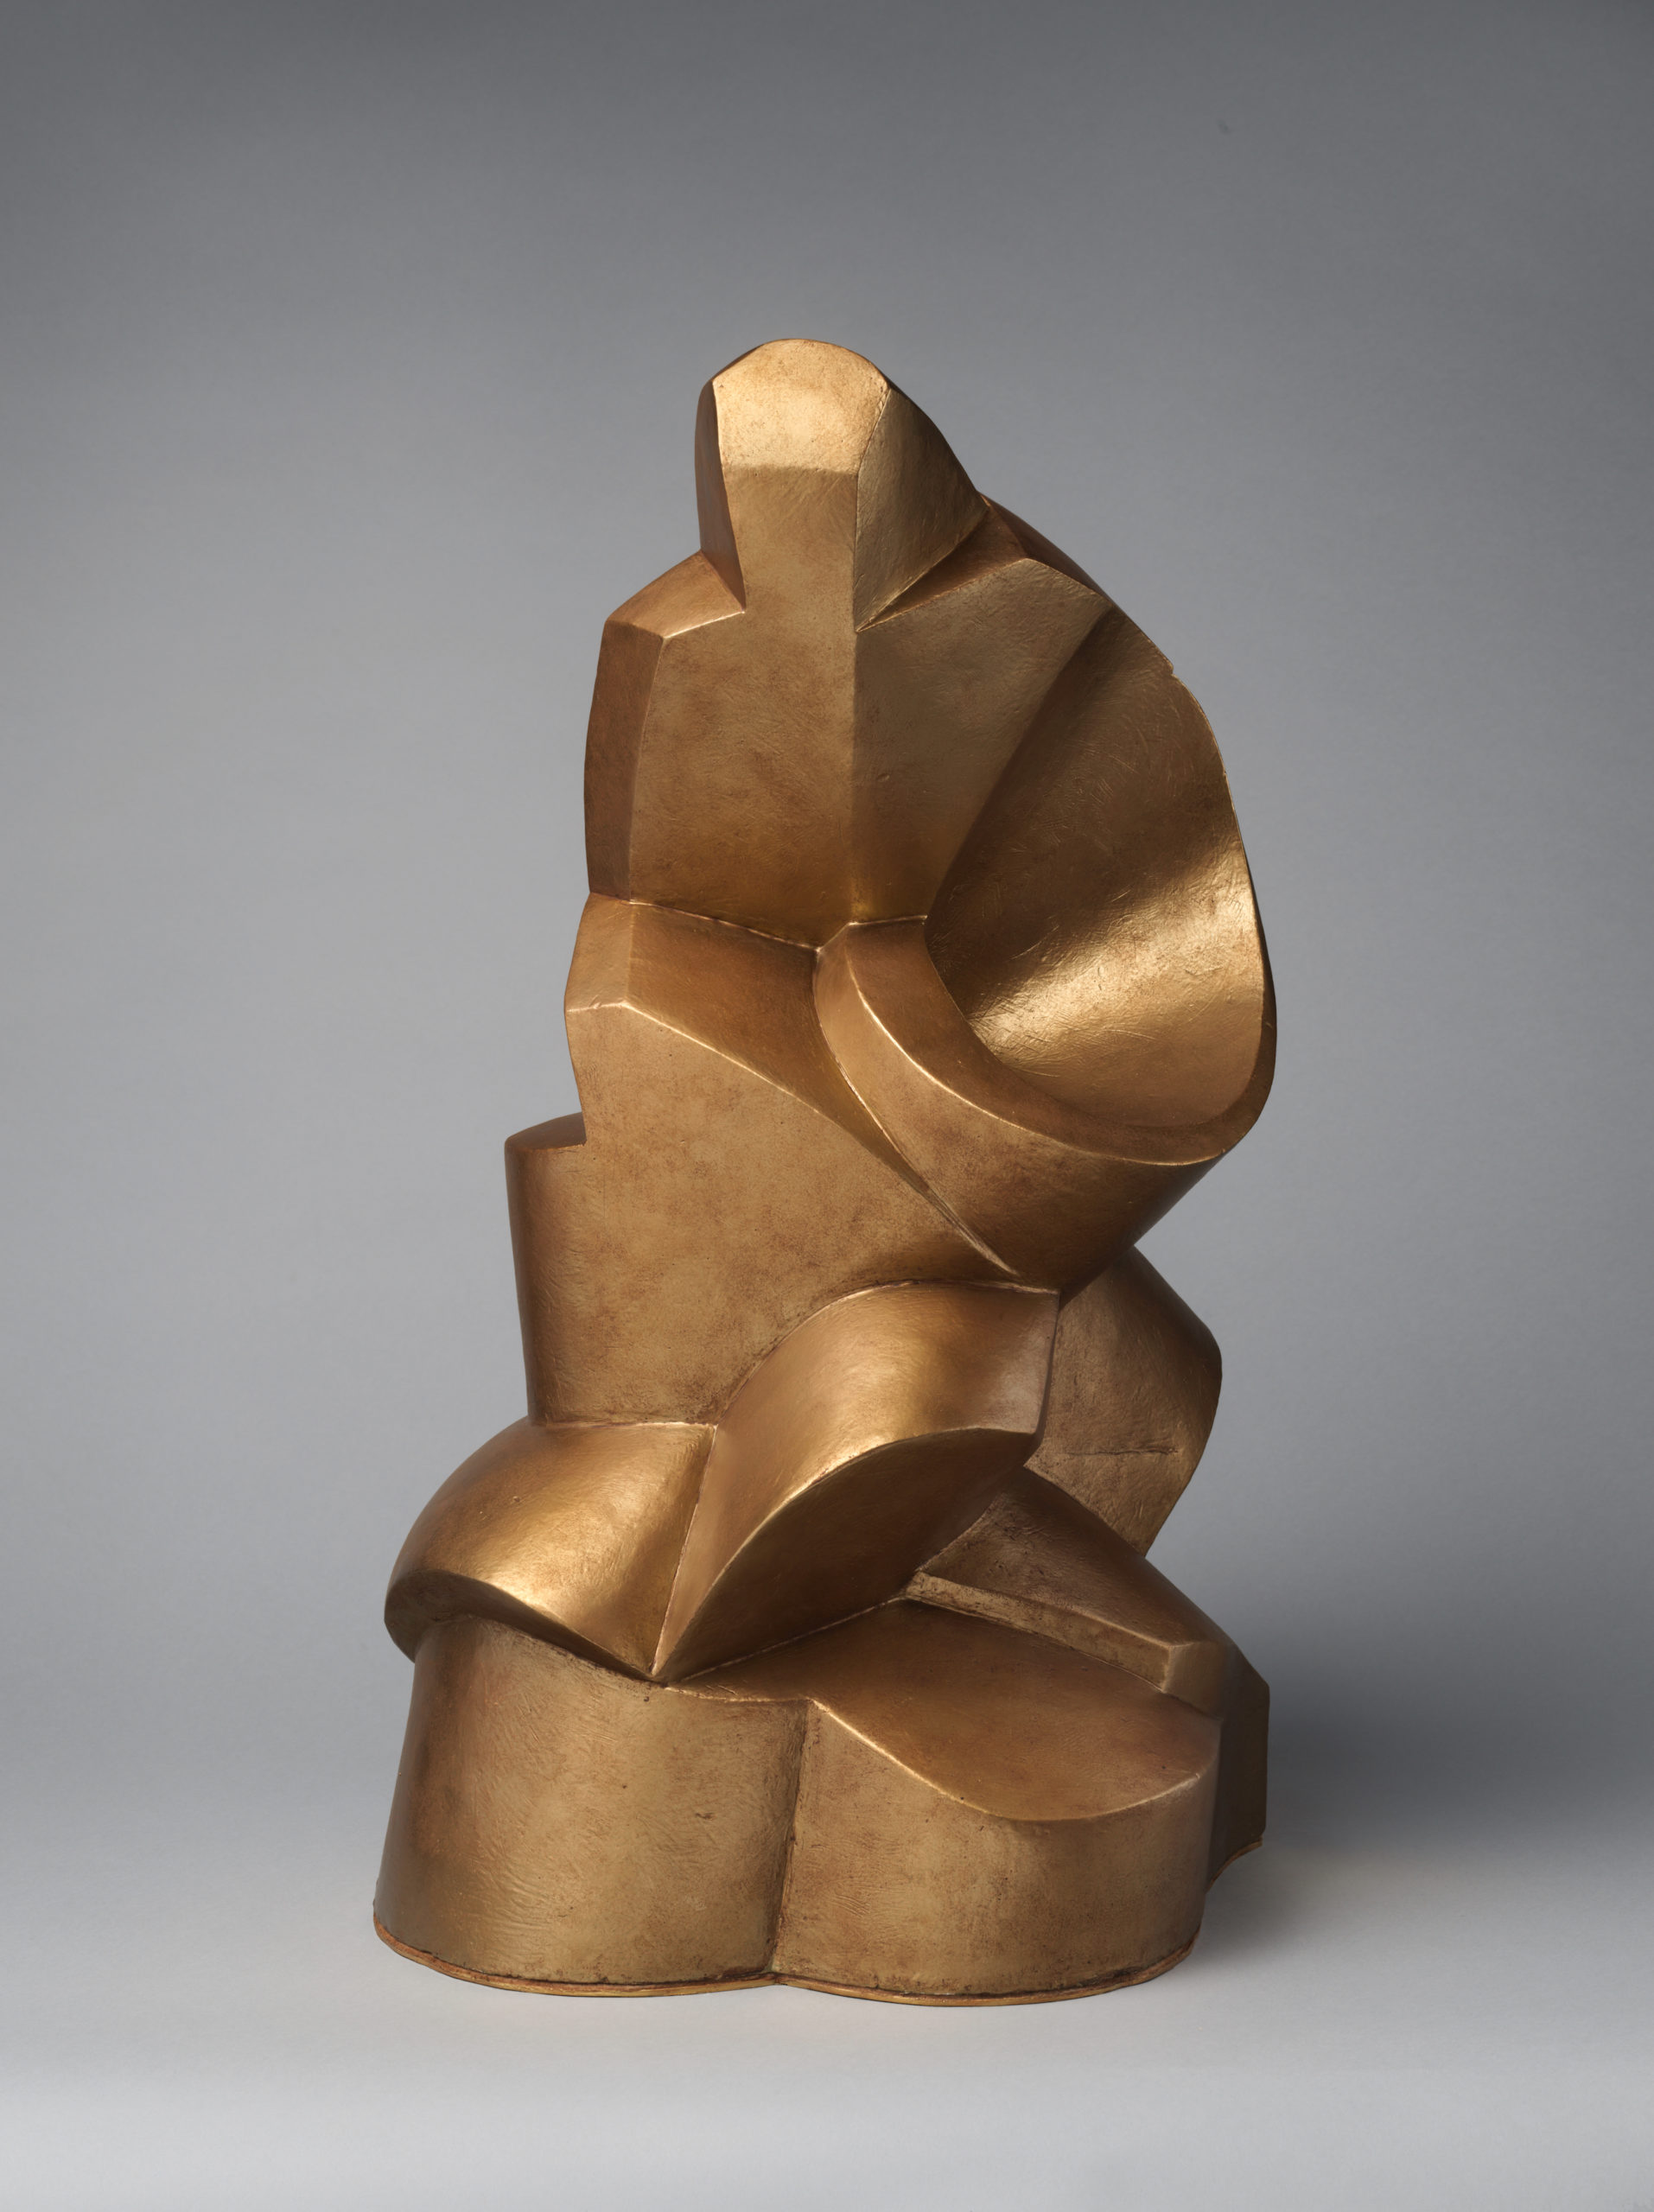 Gold sculpture of broad, cylindrical and flat-edged forms including a spiral.